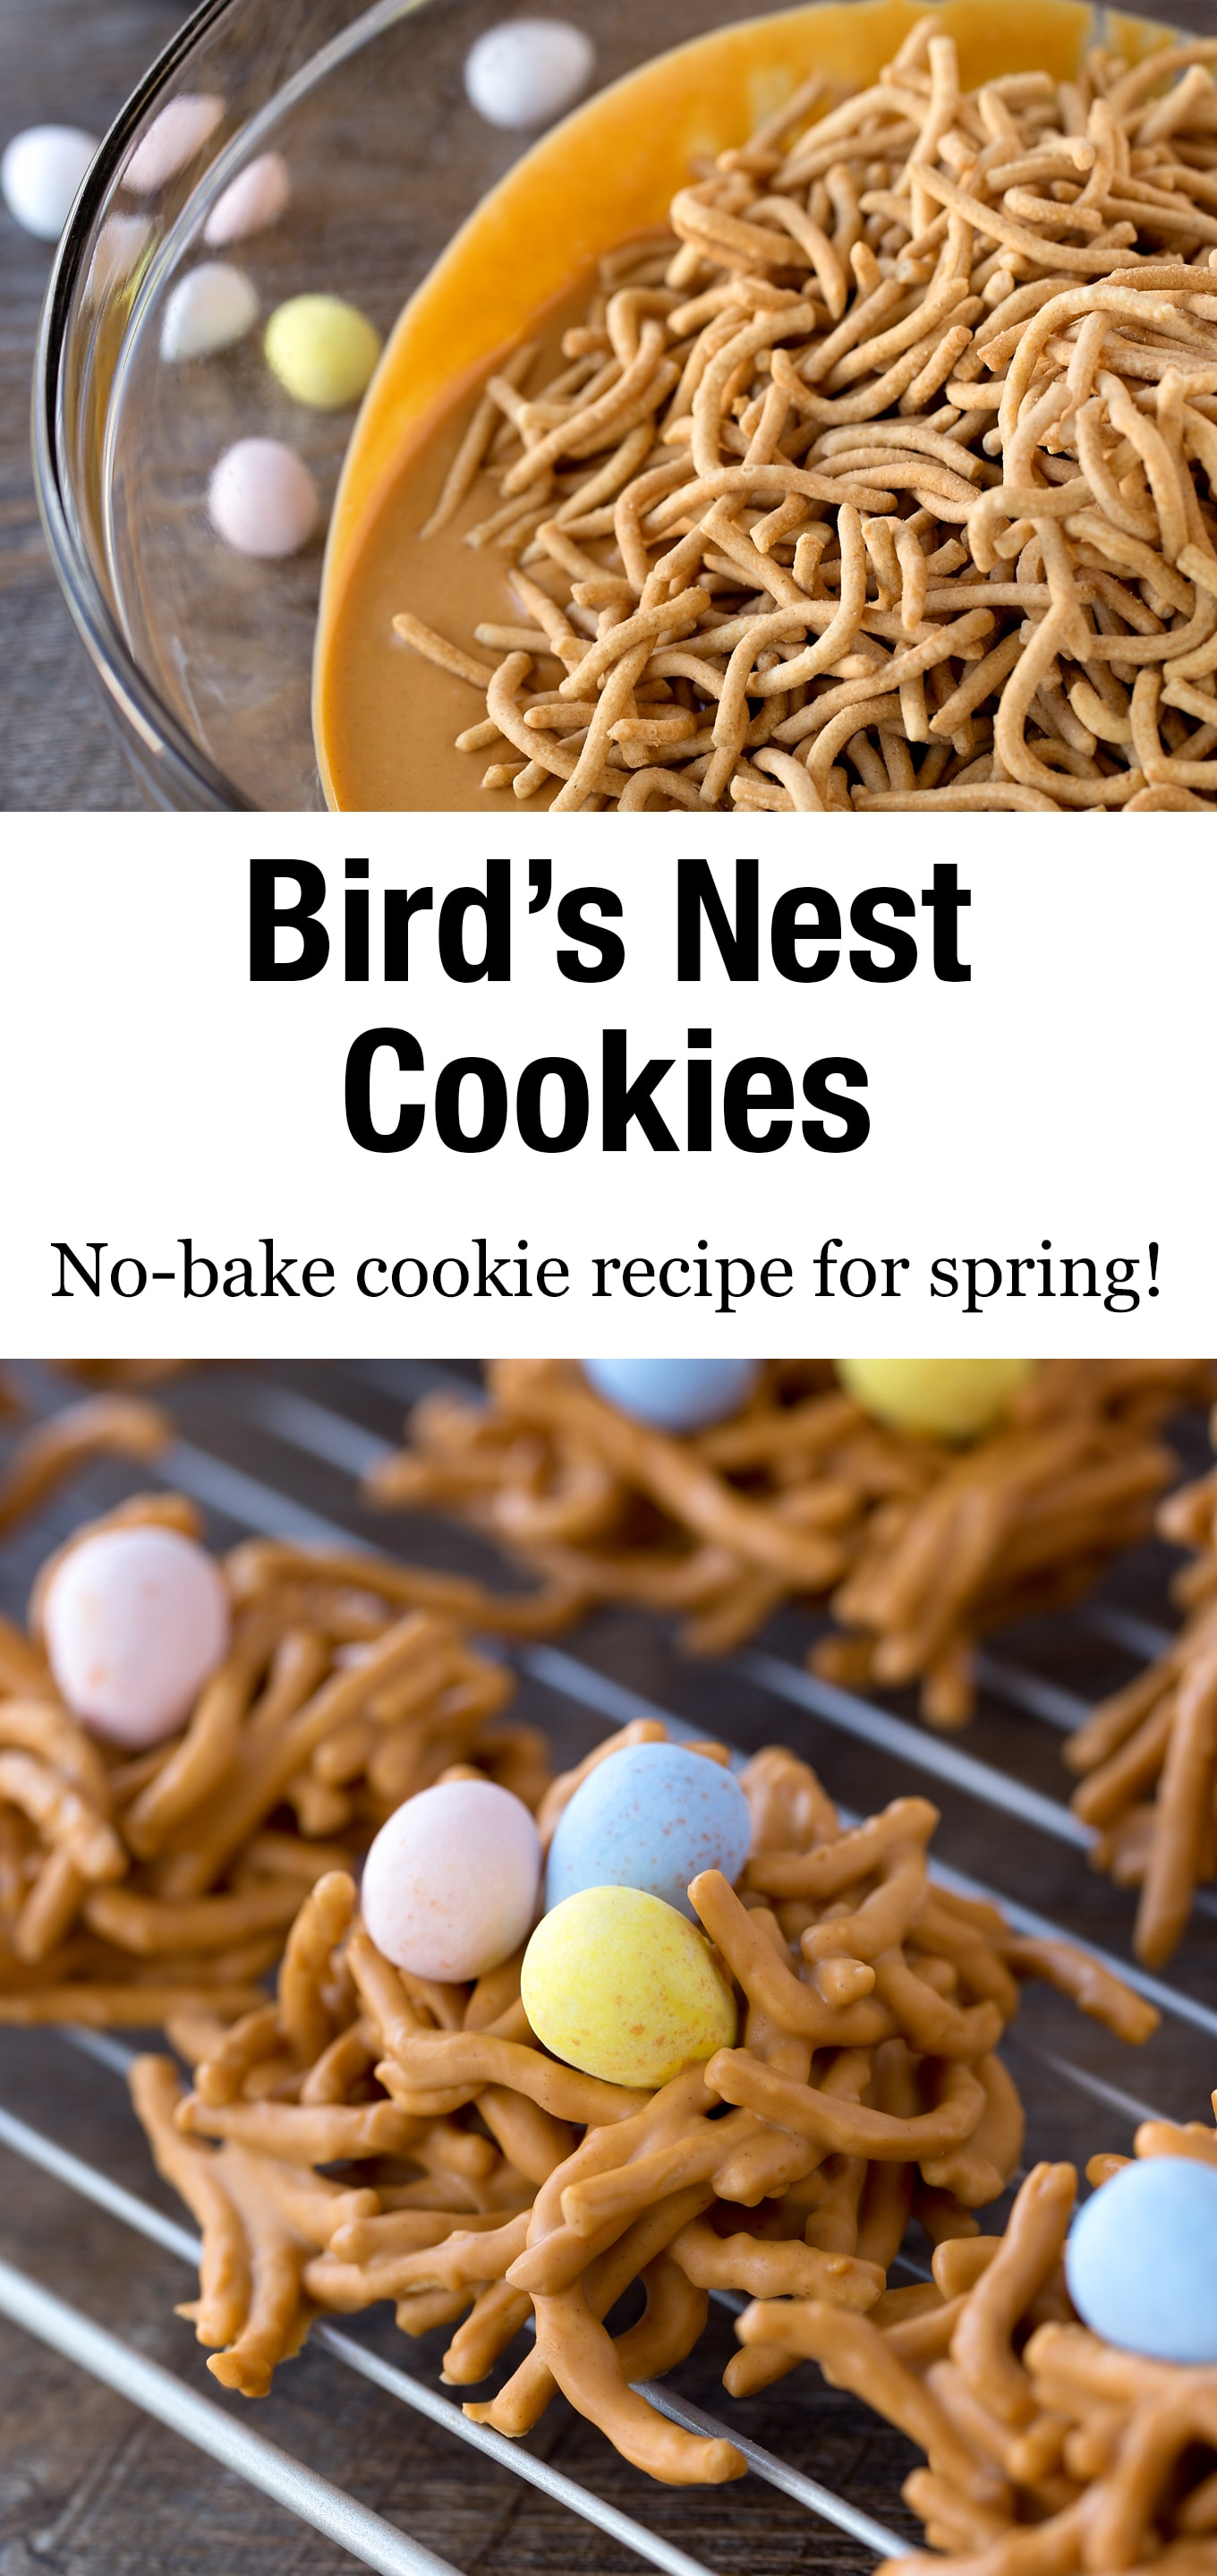 No-bake Bird's Nest Cookies,commonly known as Haystacks,are given a nest-inspired twist when decorated with creamy chocolate eggs. #birdsnestcookies #nobake #chowmein #cookierecipes via @firefliesandmudpies